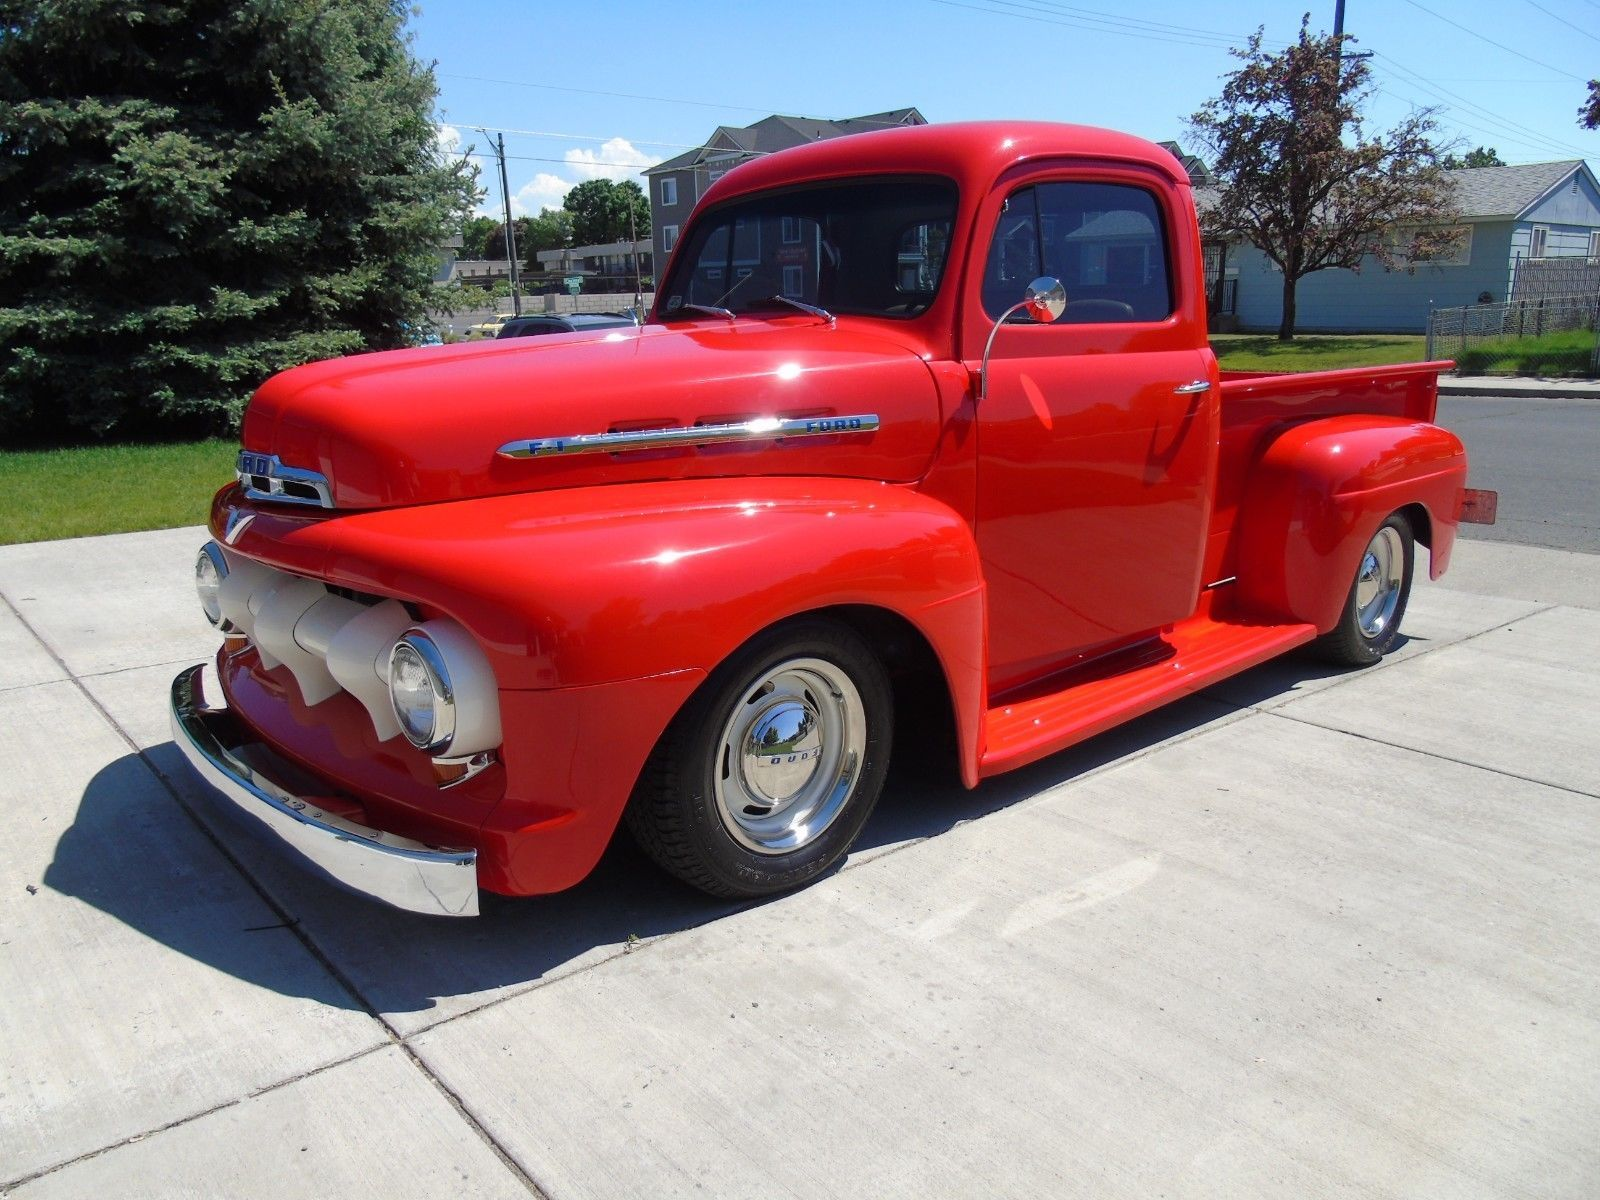 1951 ford f 100 hot rods pinterest ford f100 rat rod and 1956 1953 Ford F1 Rat Rod 1951 ford f 100 1951 ford f100 pick up truck street rod